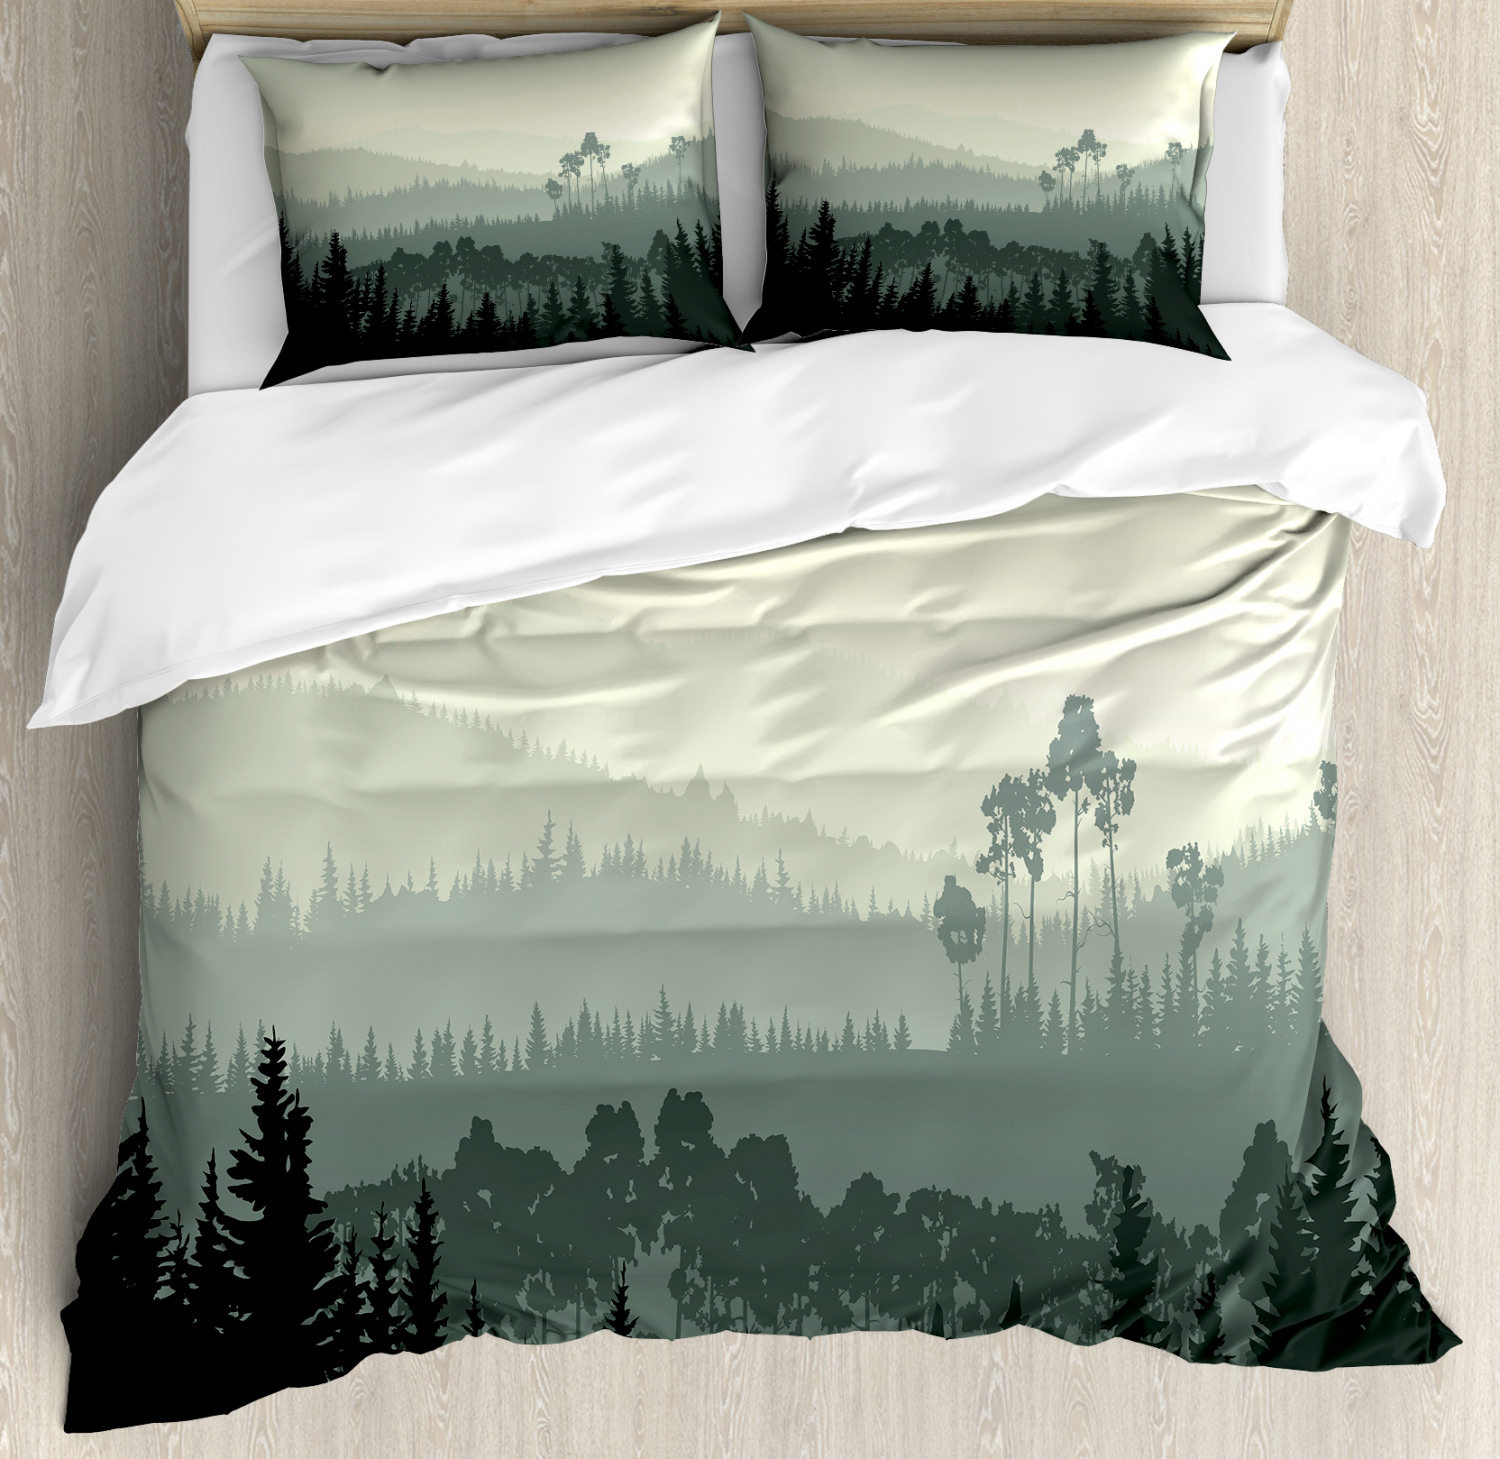 Scenery Duvet Cover Set with Pillow Shams Valley Mystic Forest Print